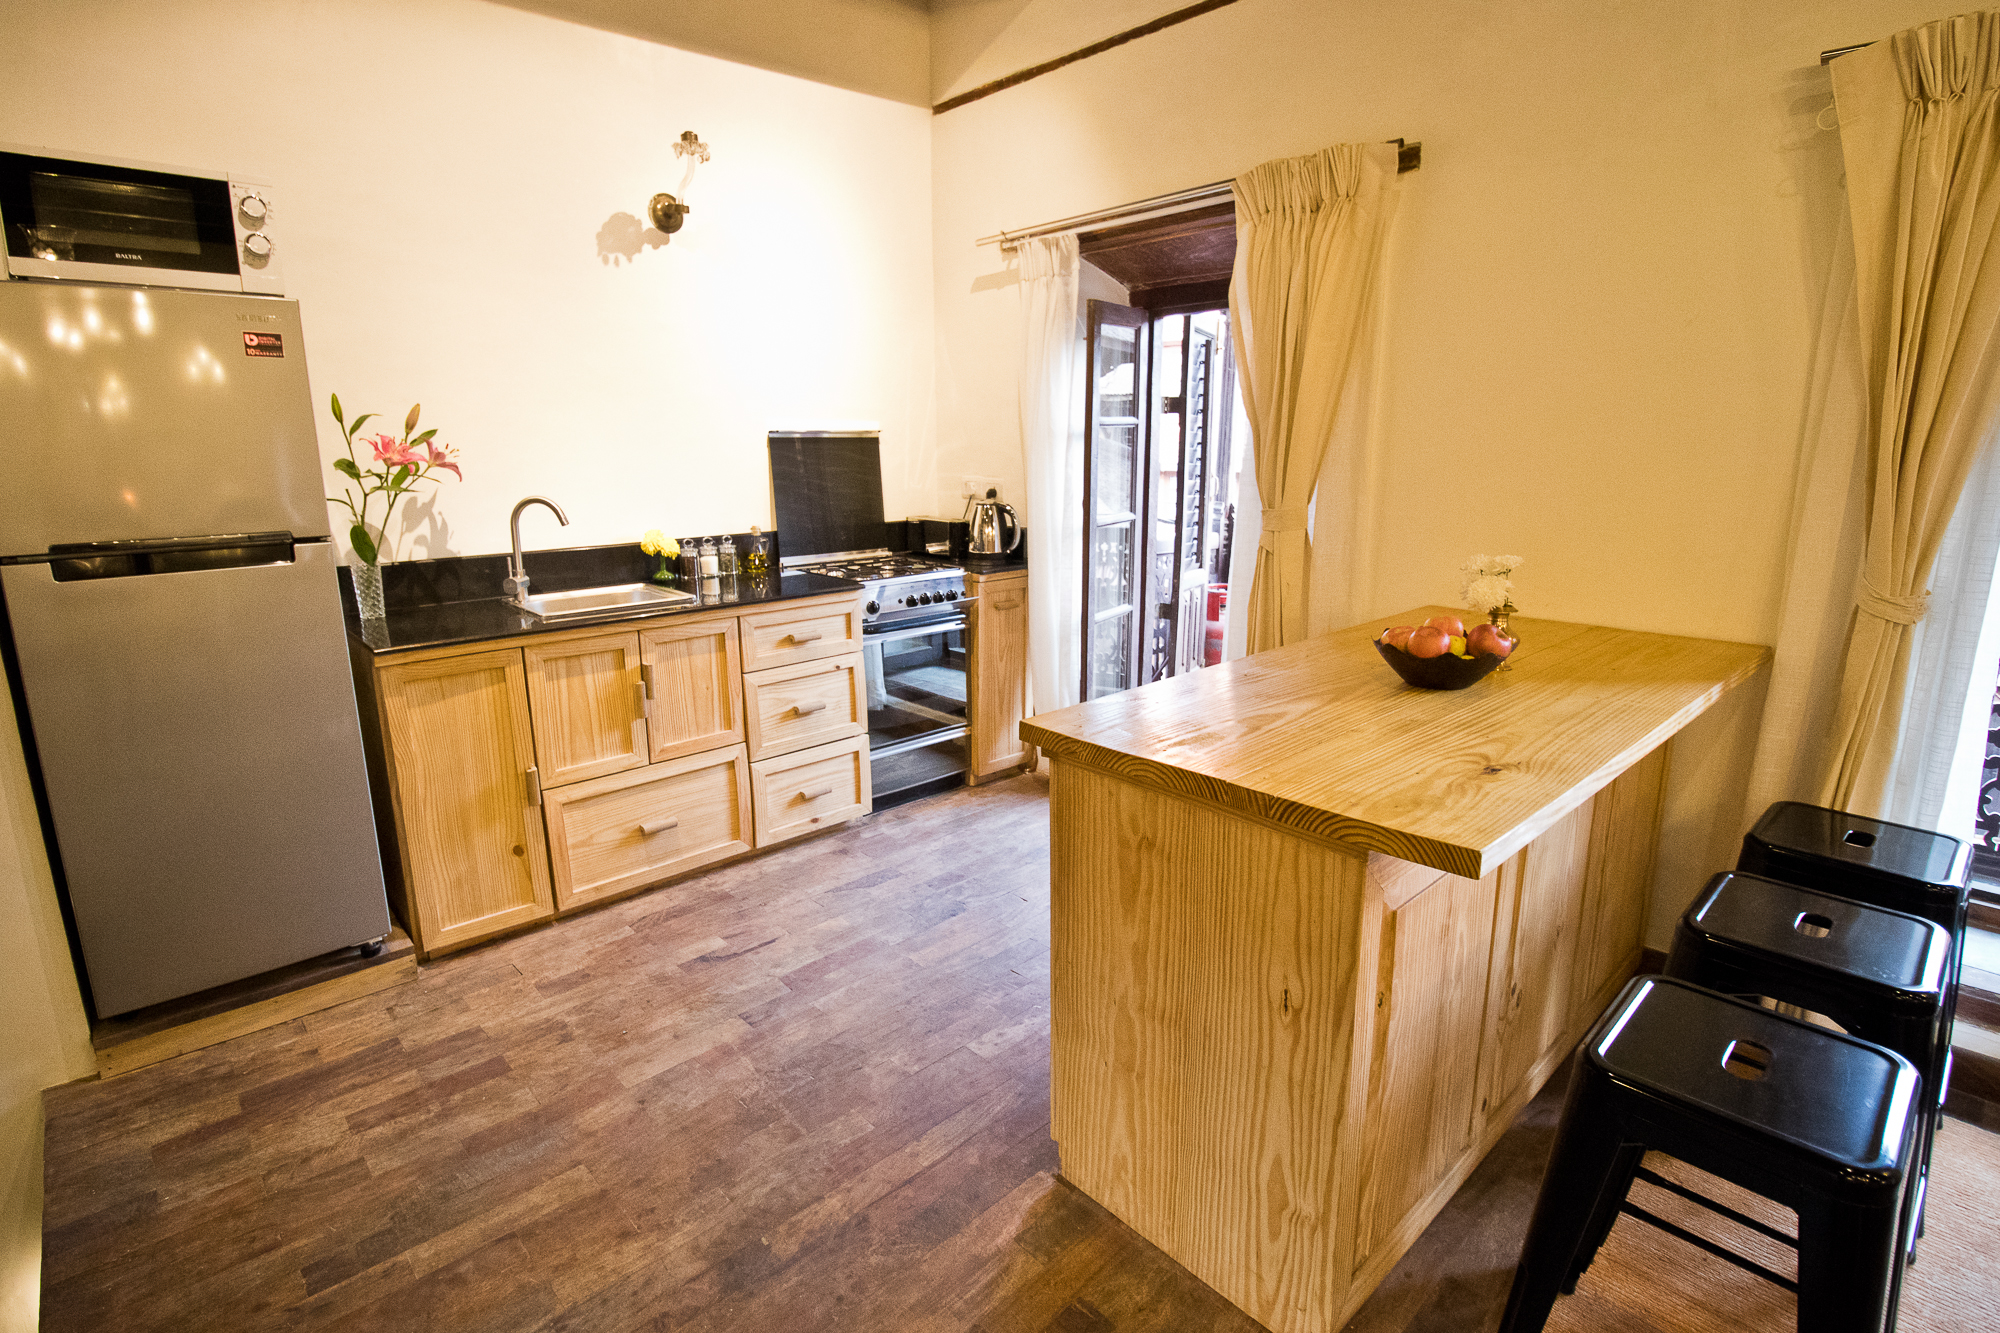 Here is the kitchen set up at Imperial Duplex.